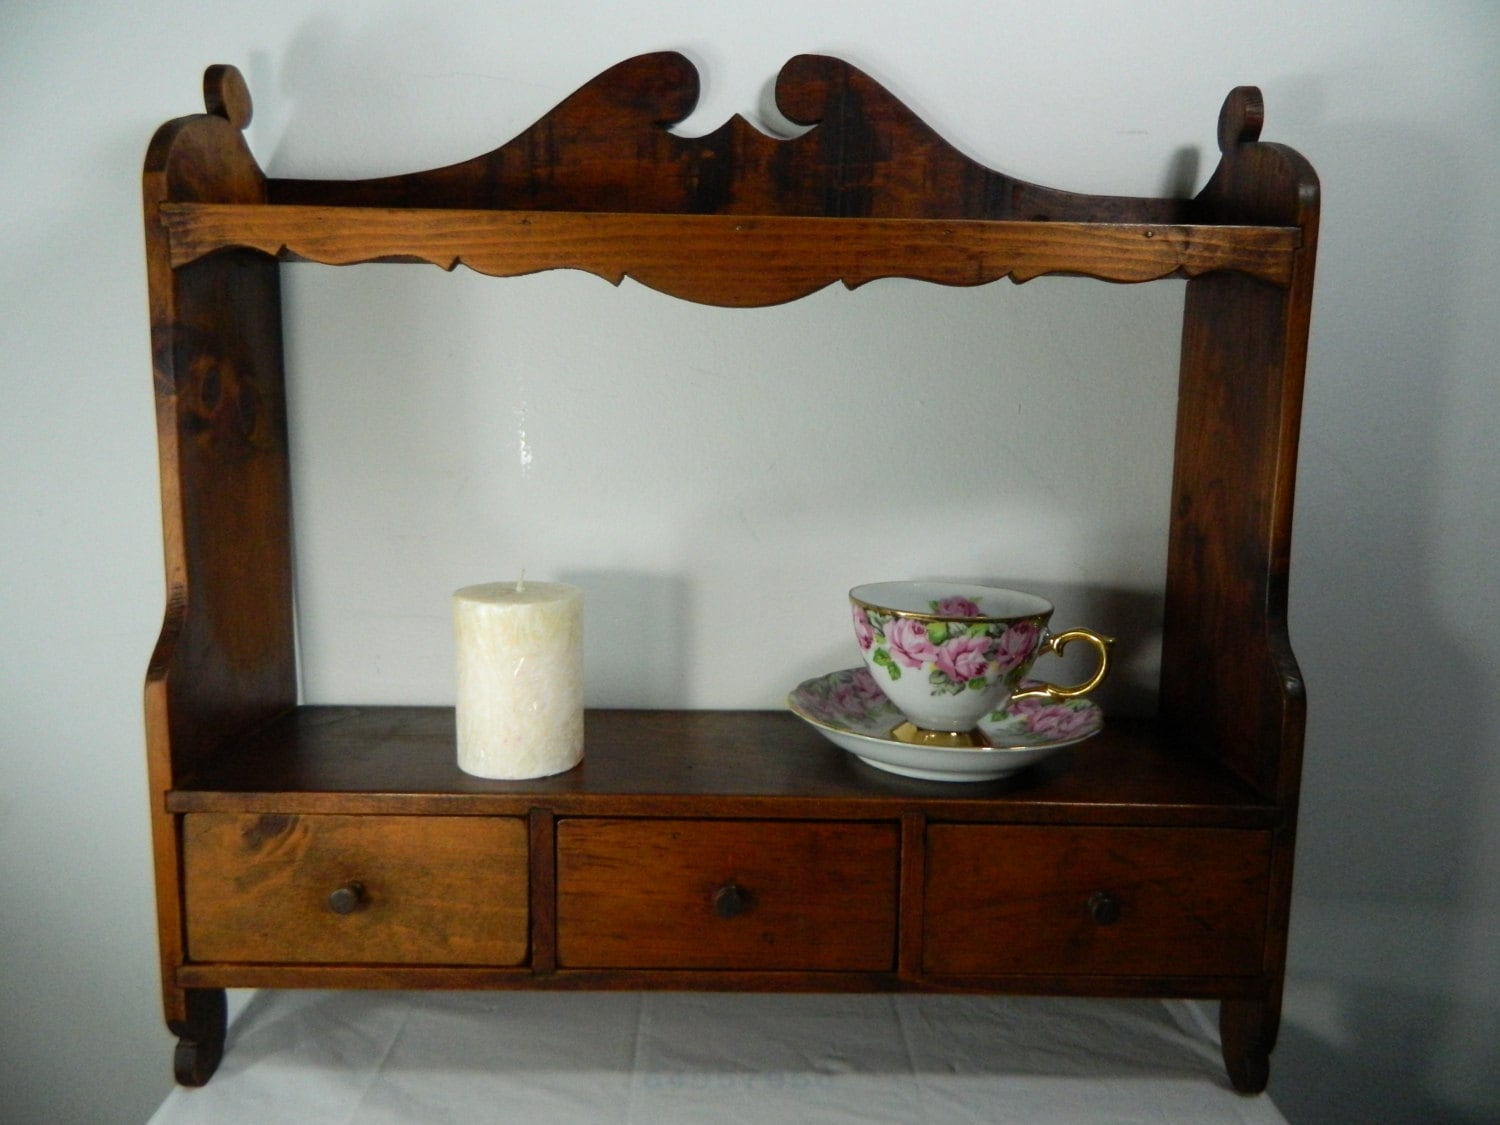 Vintage Wood Wall Shelf With Drawers 2 Shelf 3 Drawer Wooden